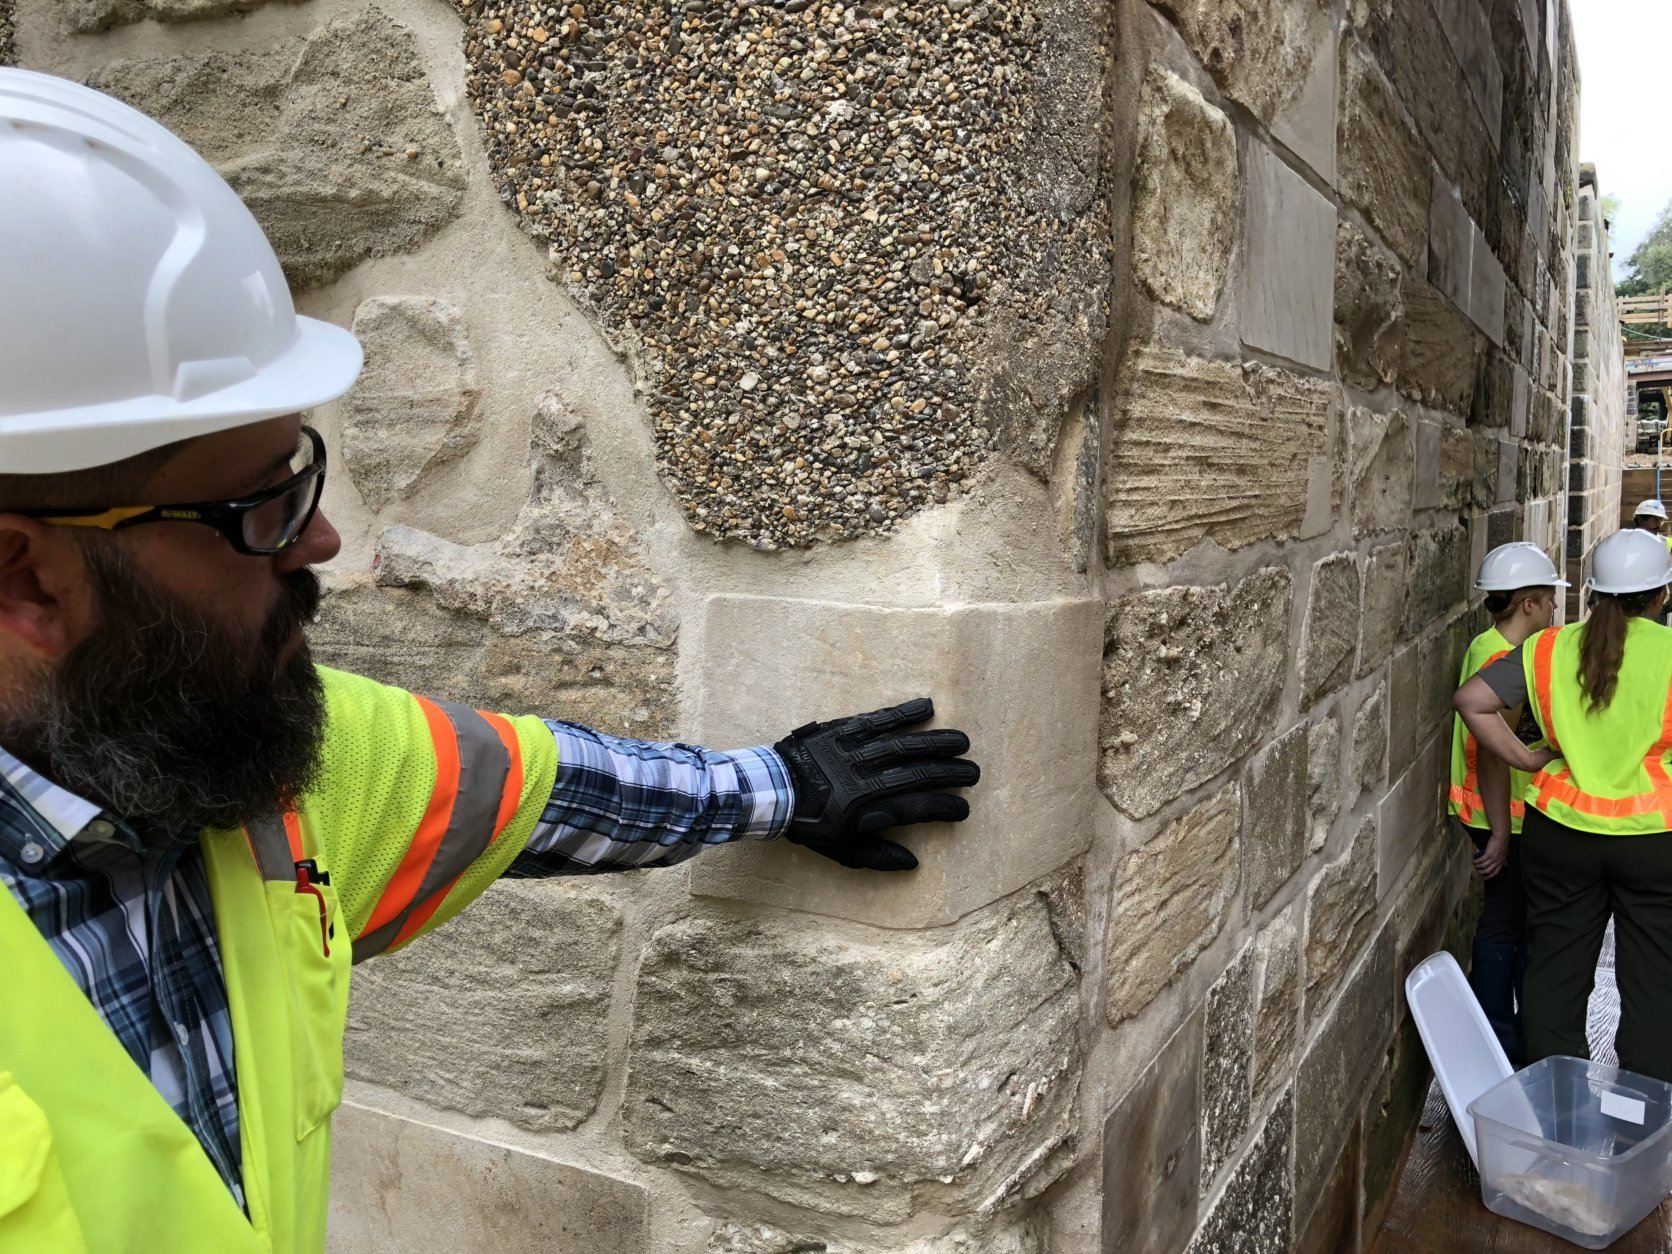 Construction manager Michael Lemaster takes a brief break while reporters are being briefed by park rangers. The dappled portion of the wall above his hand is an old concrete repair patch. He's touching a new stone that's part of the restoration project. Below Lemaster's hand is original stone from construction between the late 1820s and early 1830s. (WTOP/Kristi King)